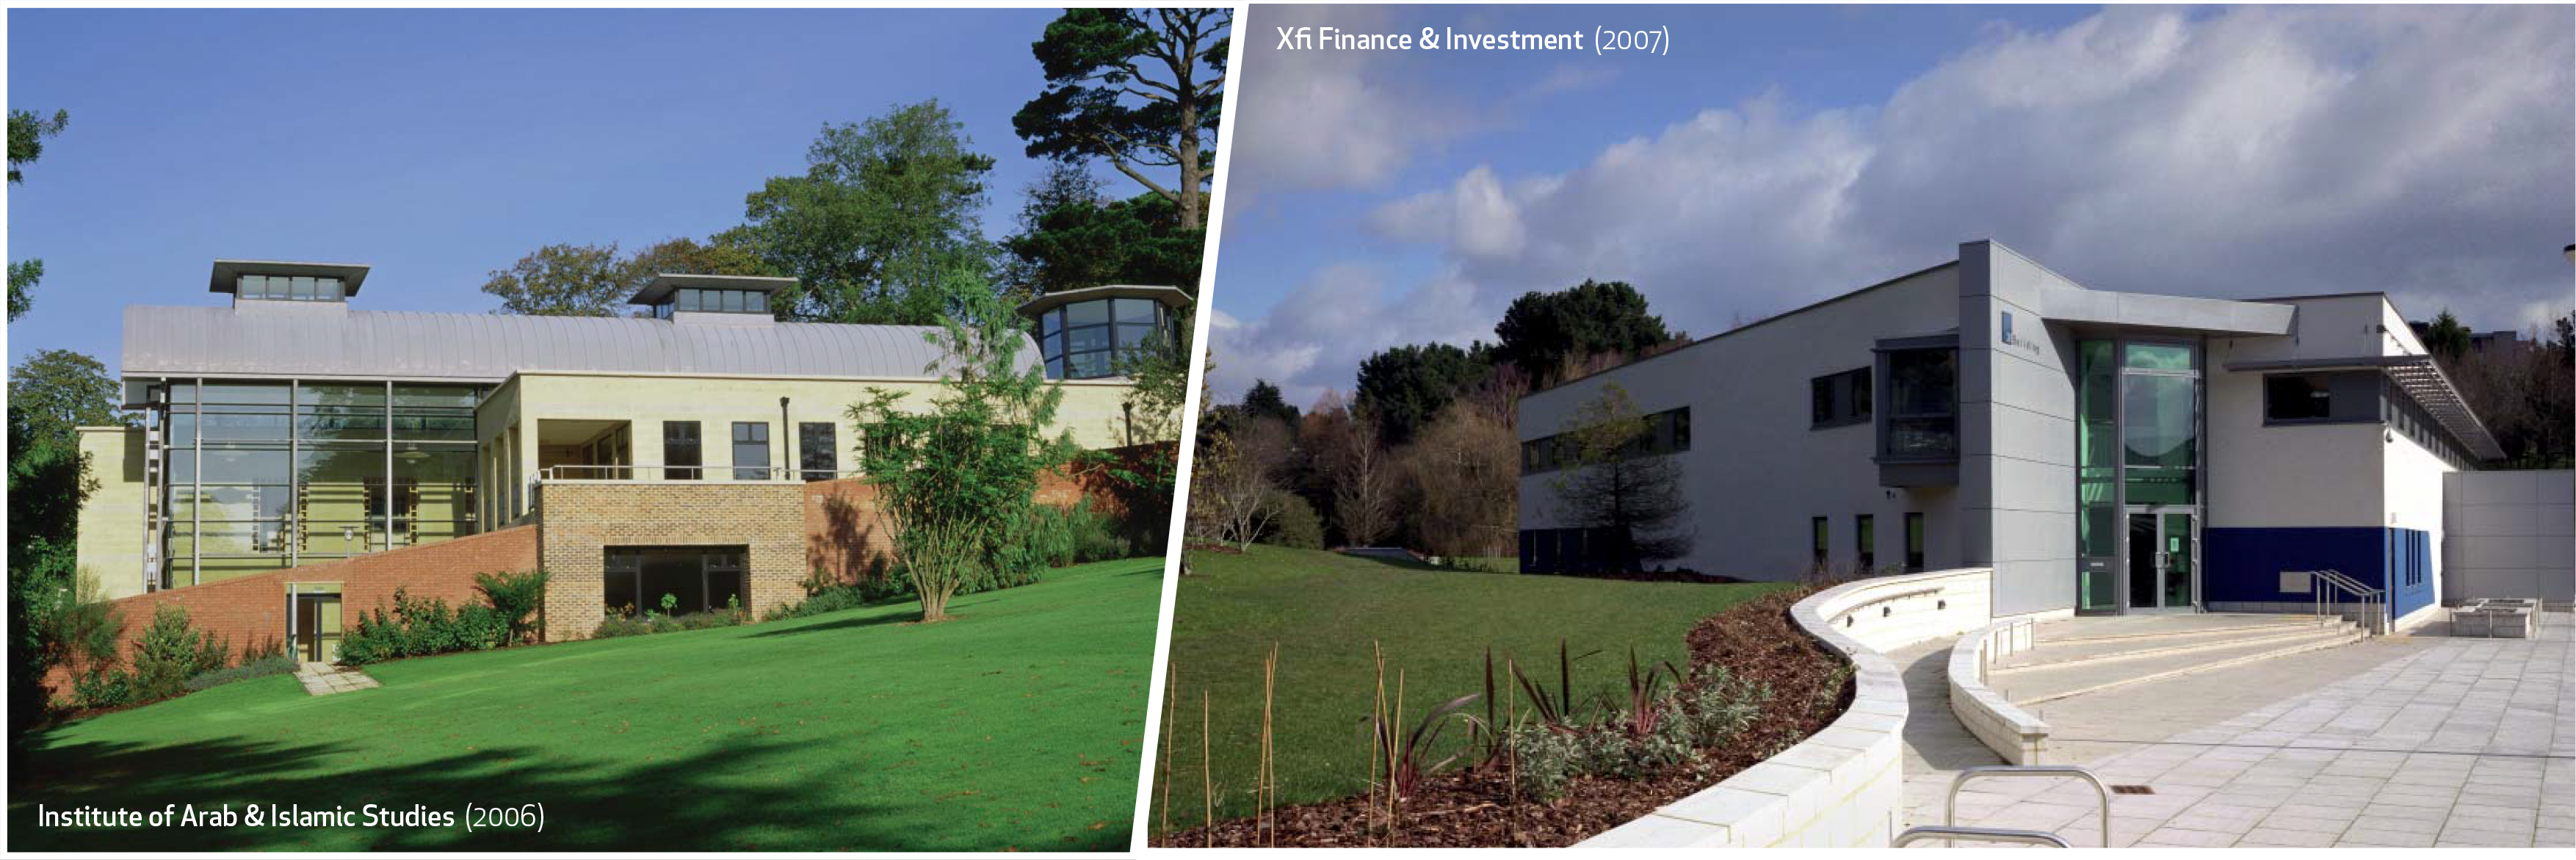 University of exeter xfi centre for finance and investment chiron investment management aumf